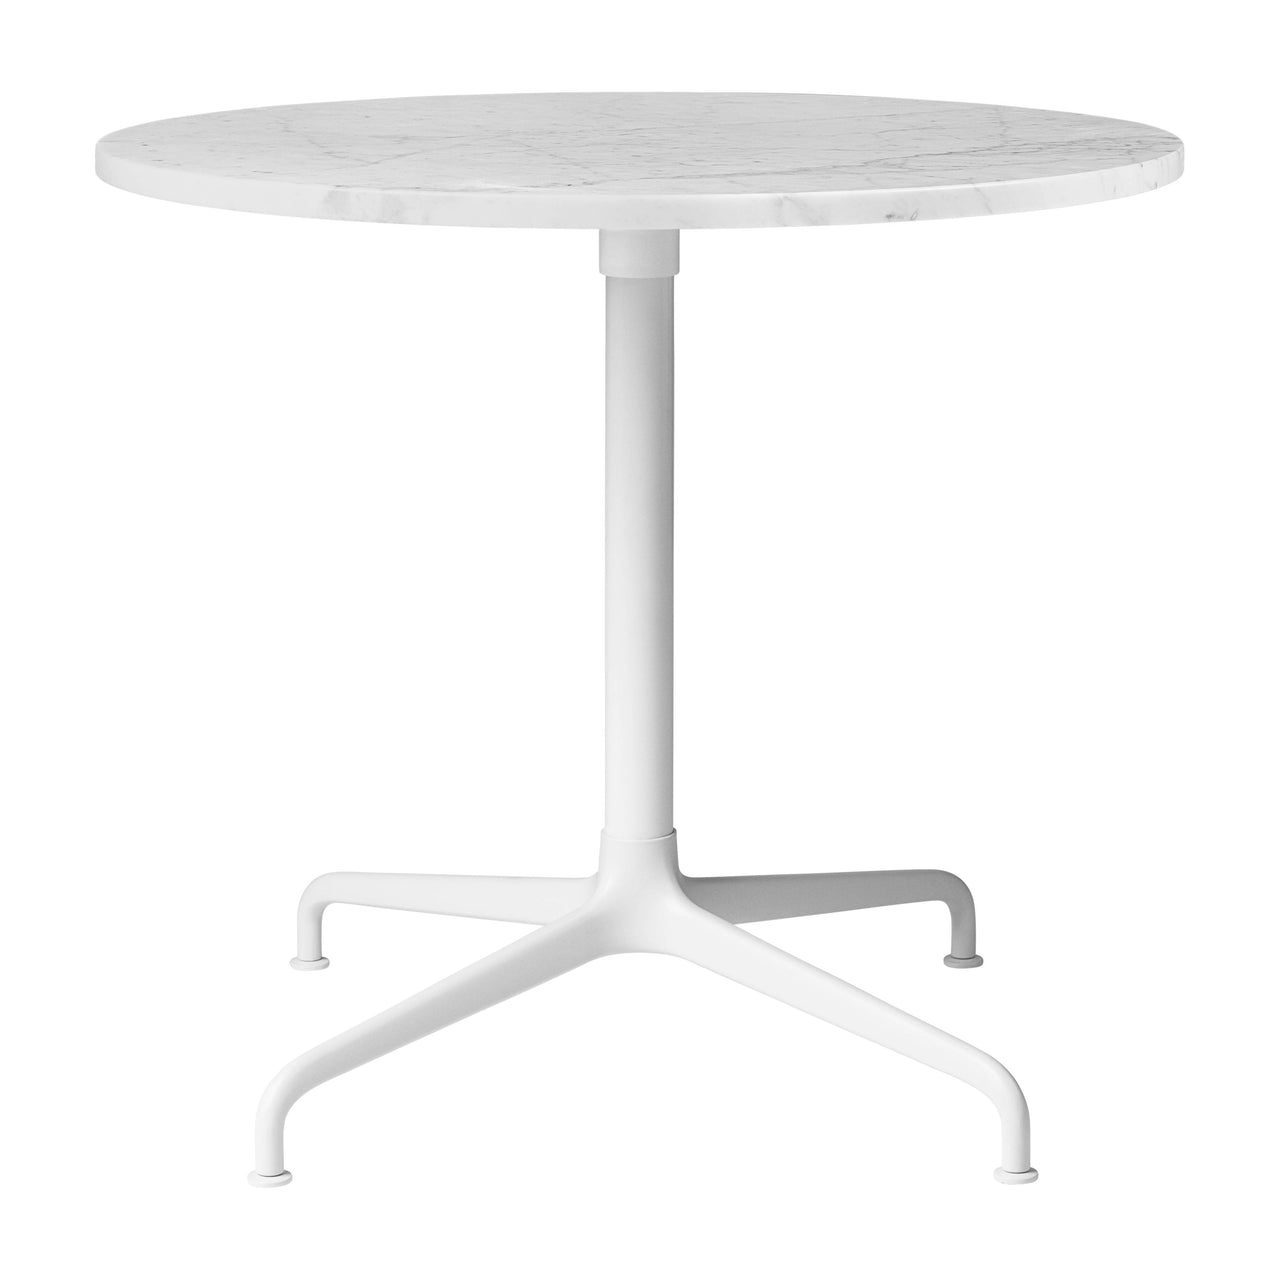 Beetle Lounge Table: Round + Small + White Carrara Marble + Soft White Semi-Matte Base